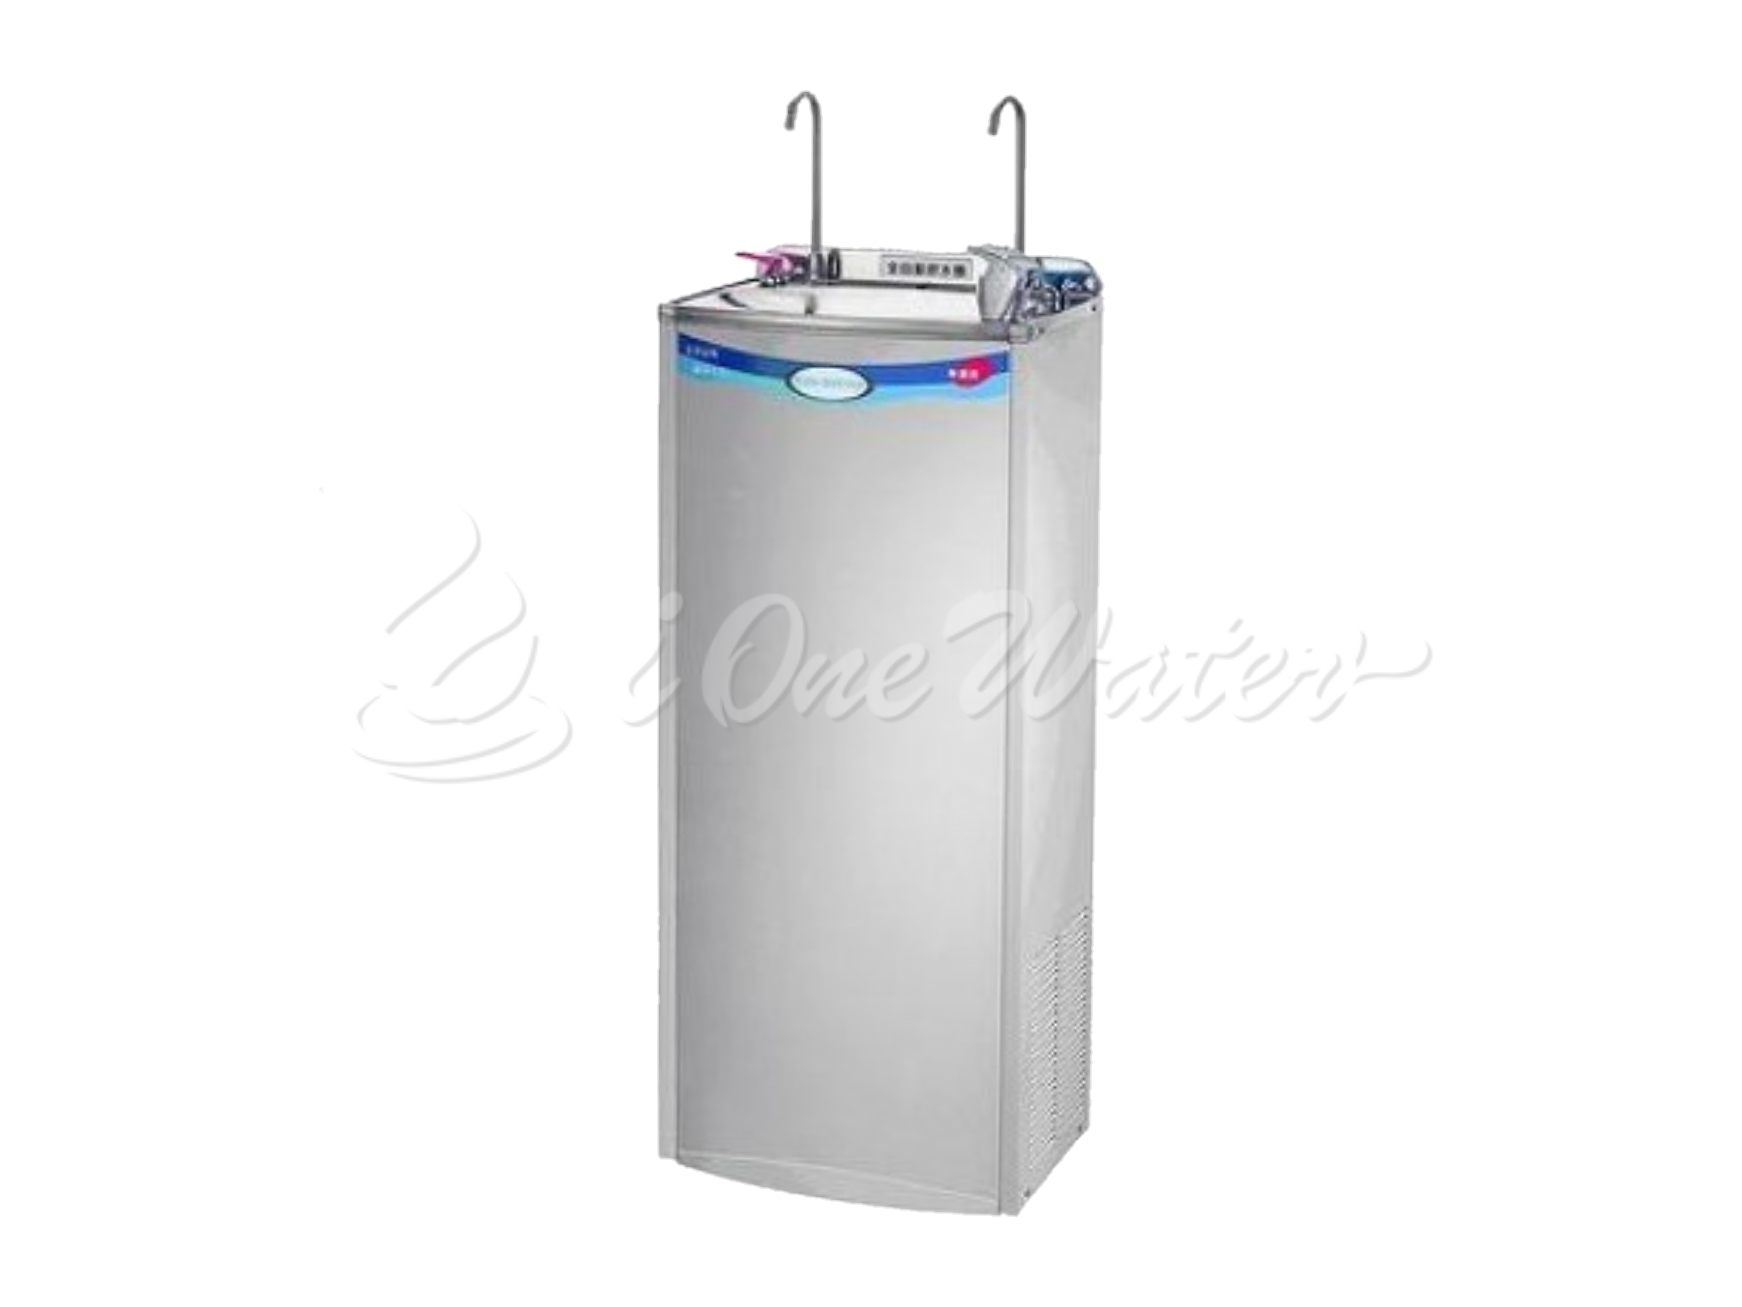 FULL STAINLESS STEEL FLOOR STANDING WATER DISPENSER